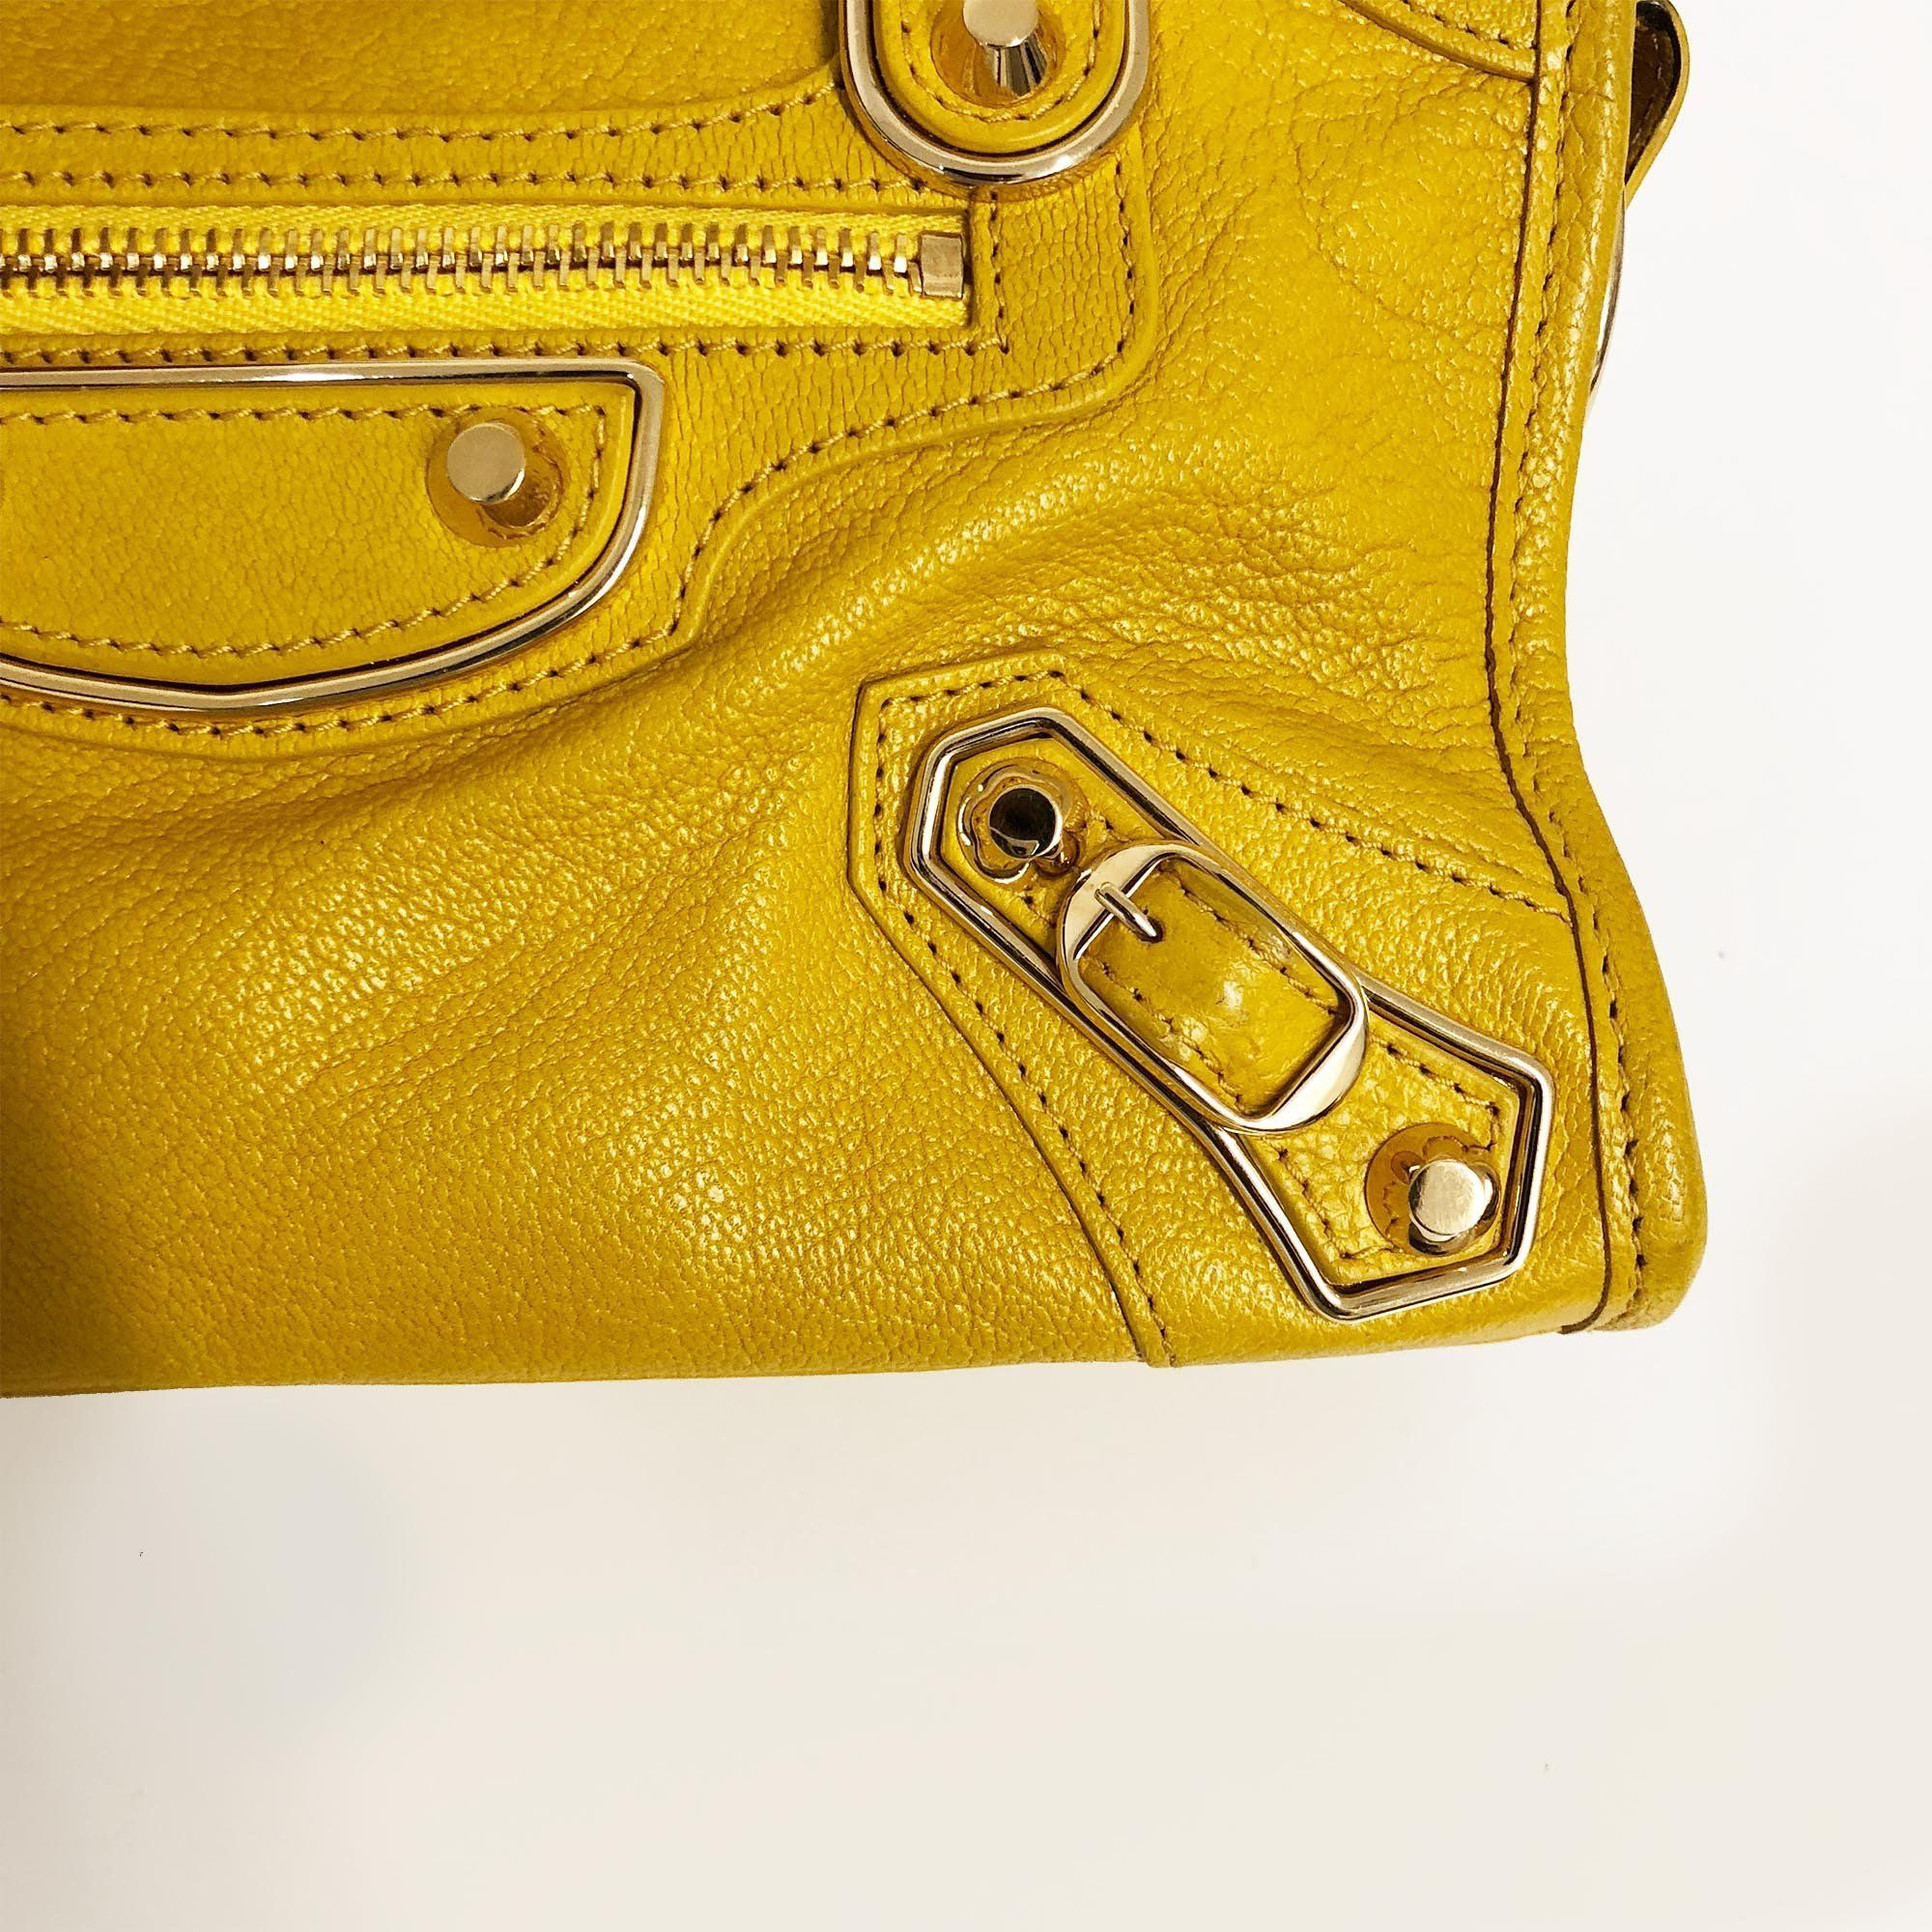 Balenciaga Yellow Nano Classic Metallic Edge City Cross-Body Bag